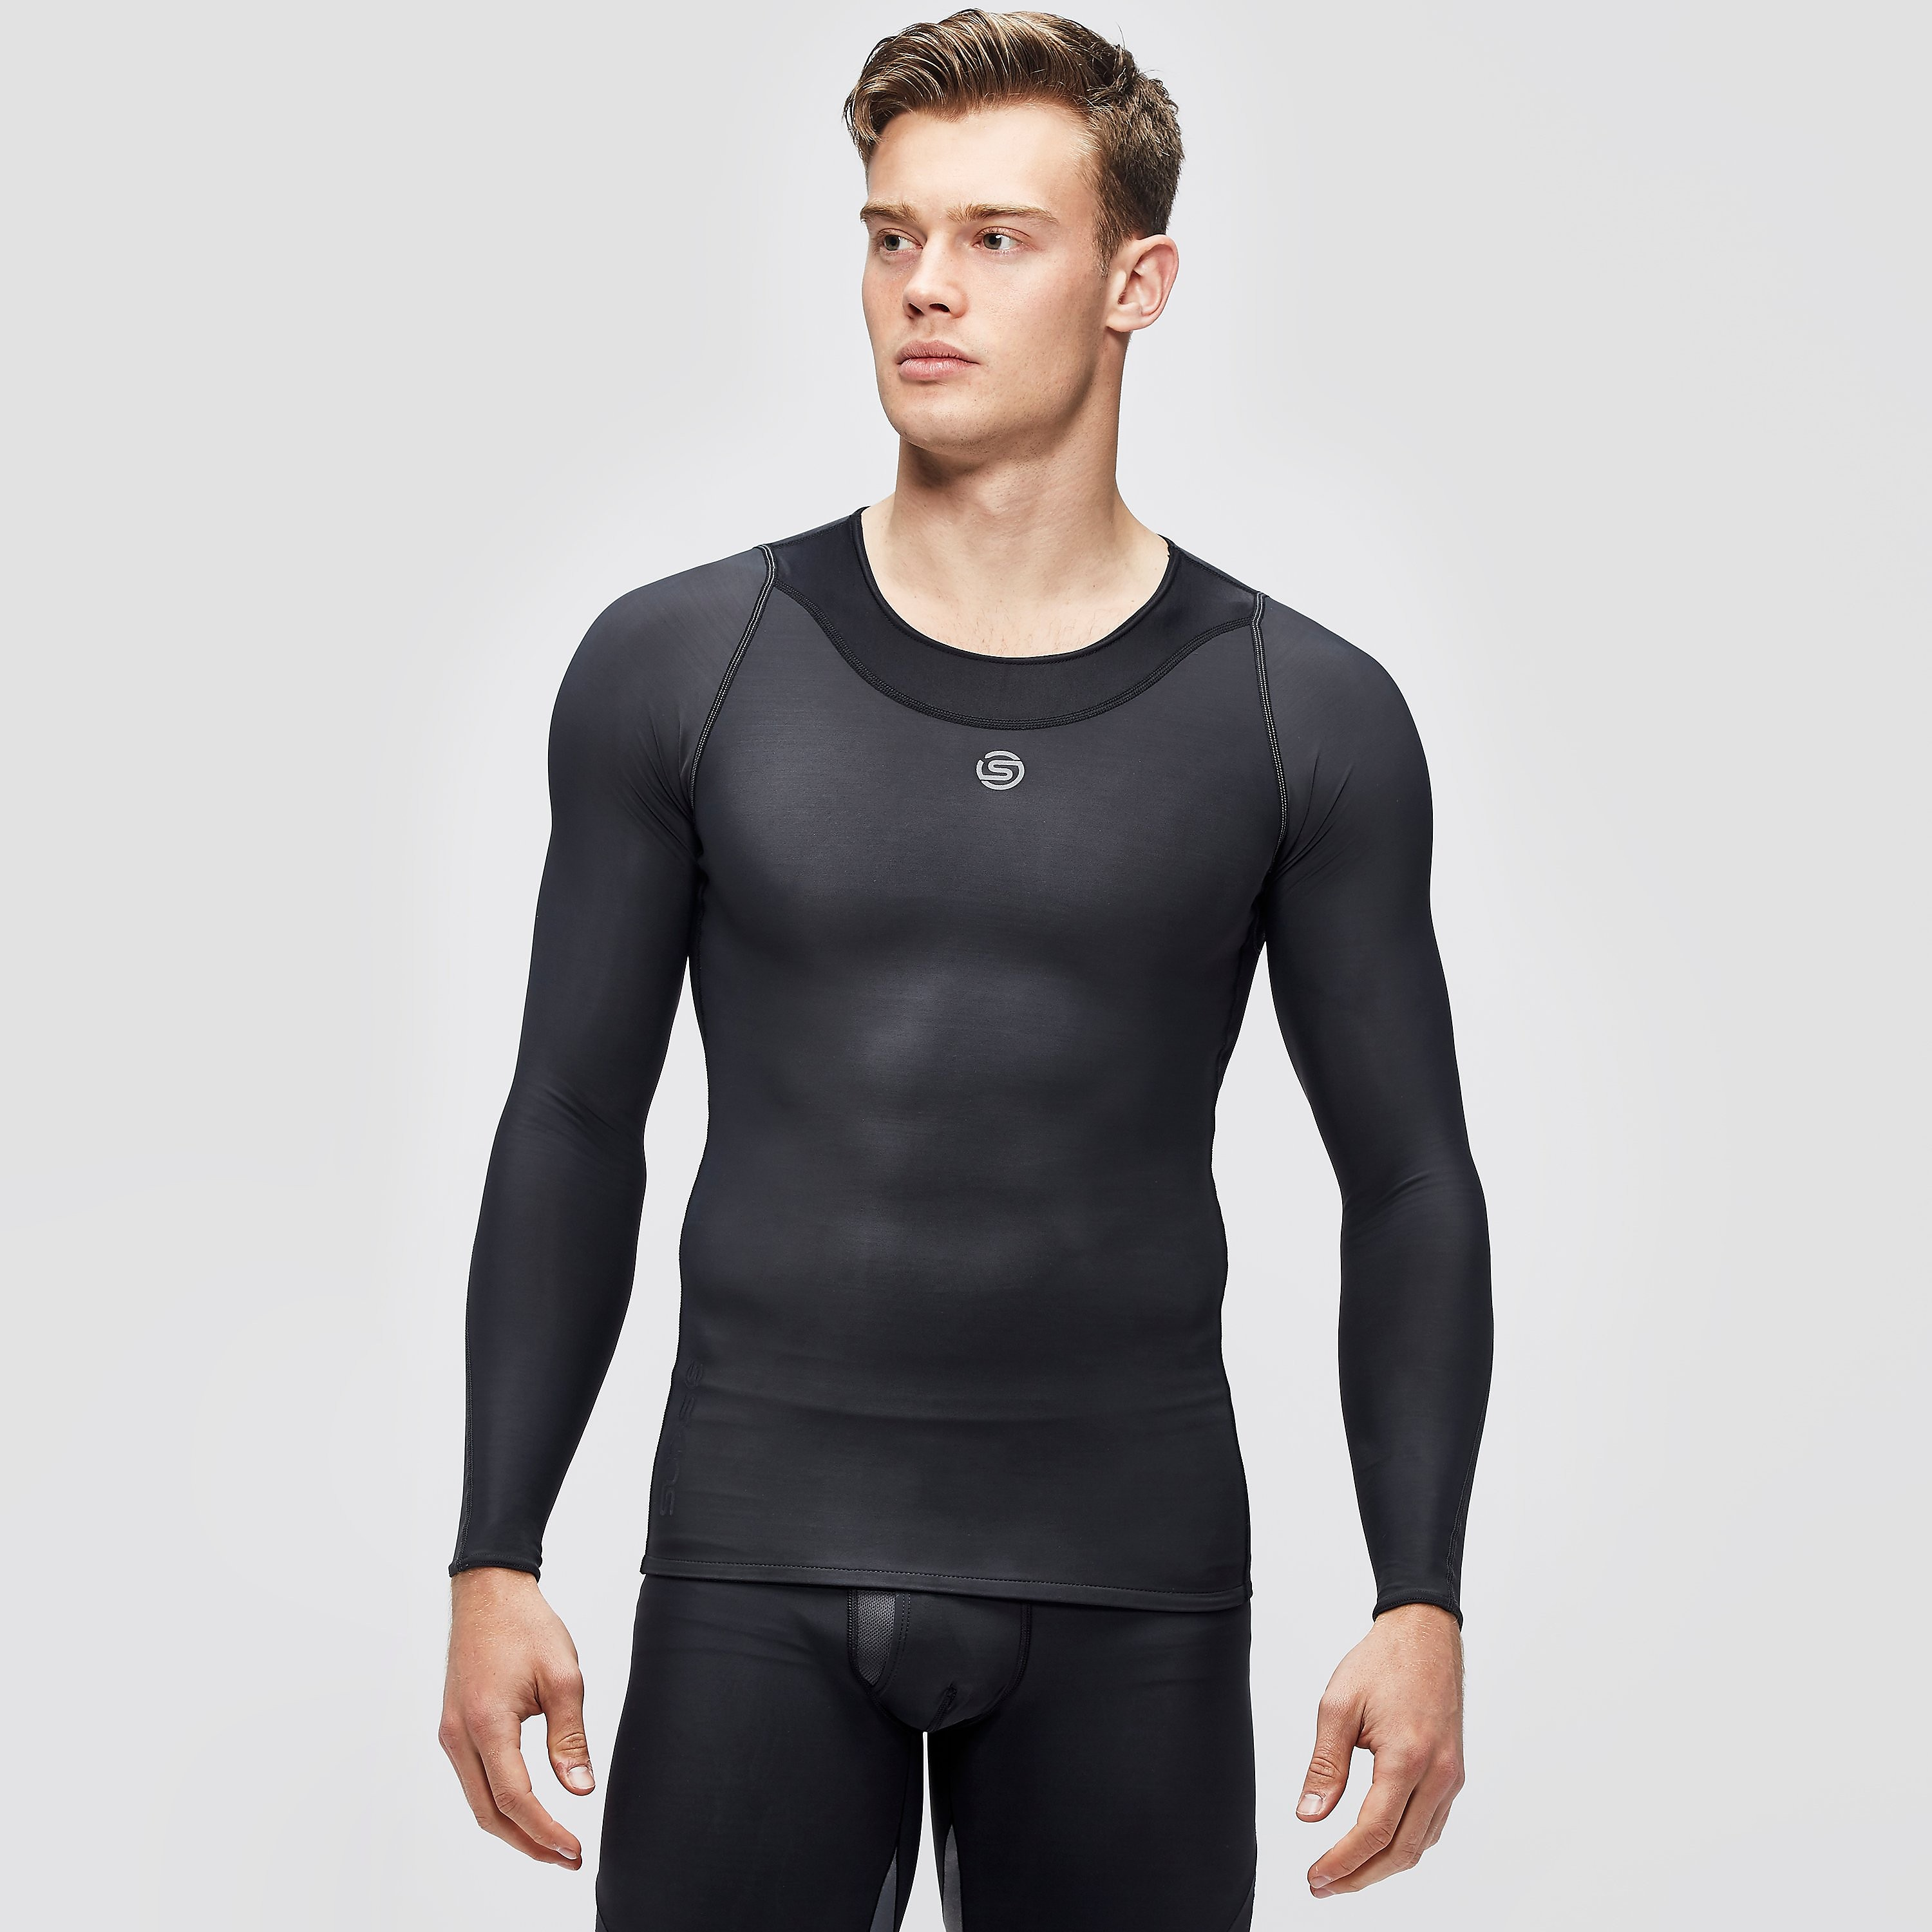 Skins RY400 Mens Compression Long Sleeve Top